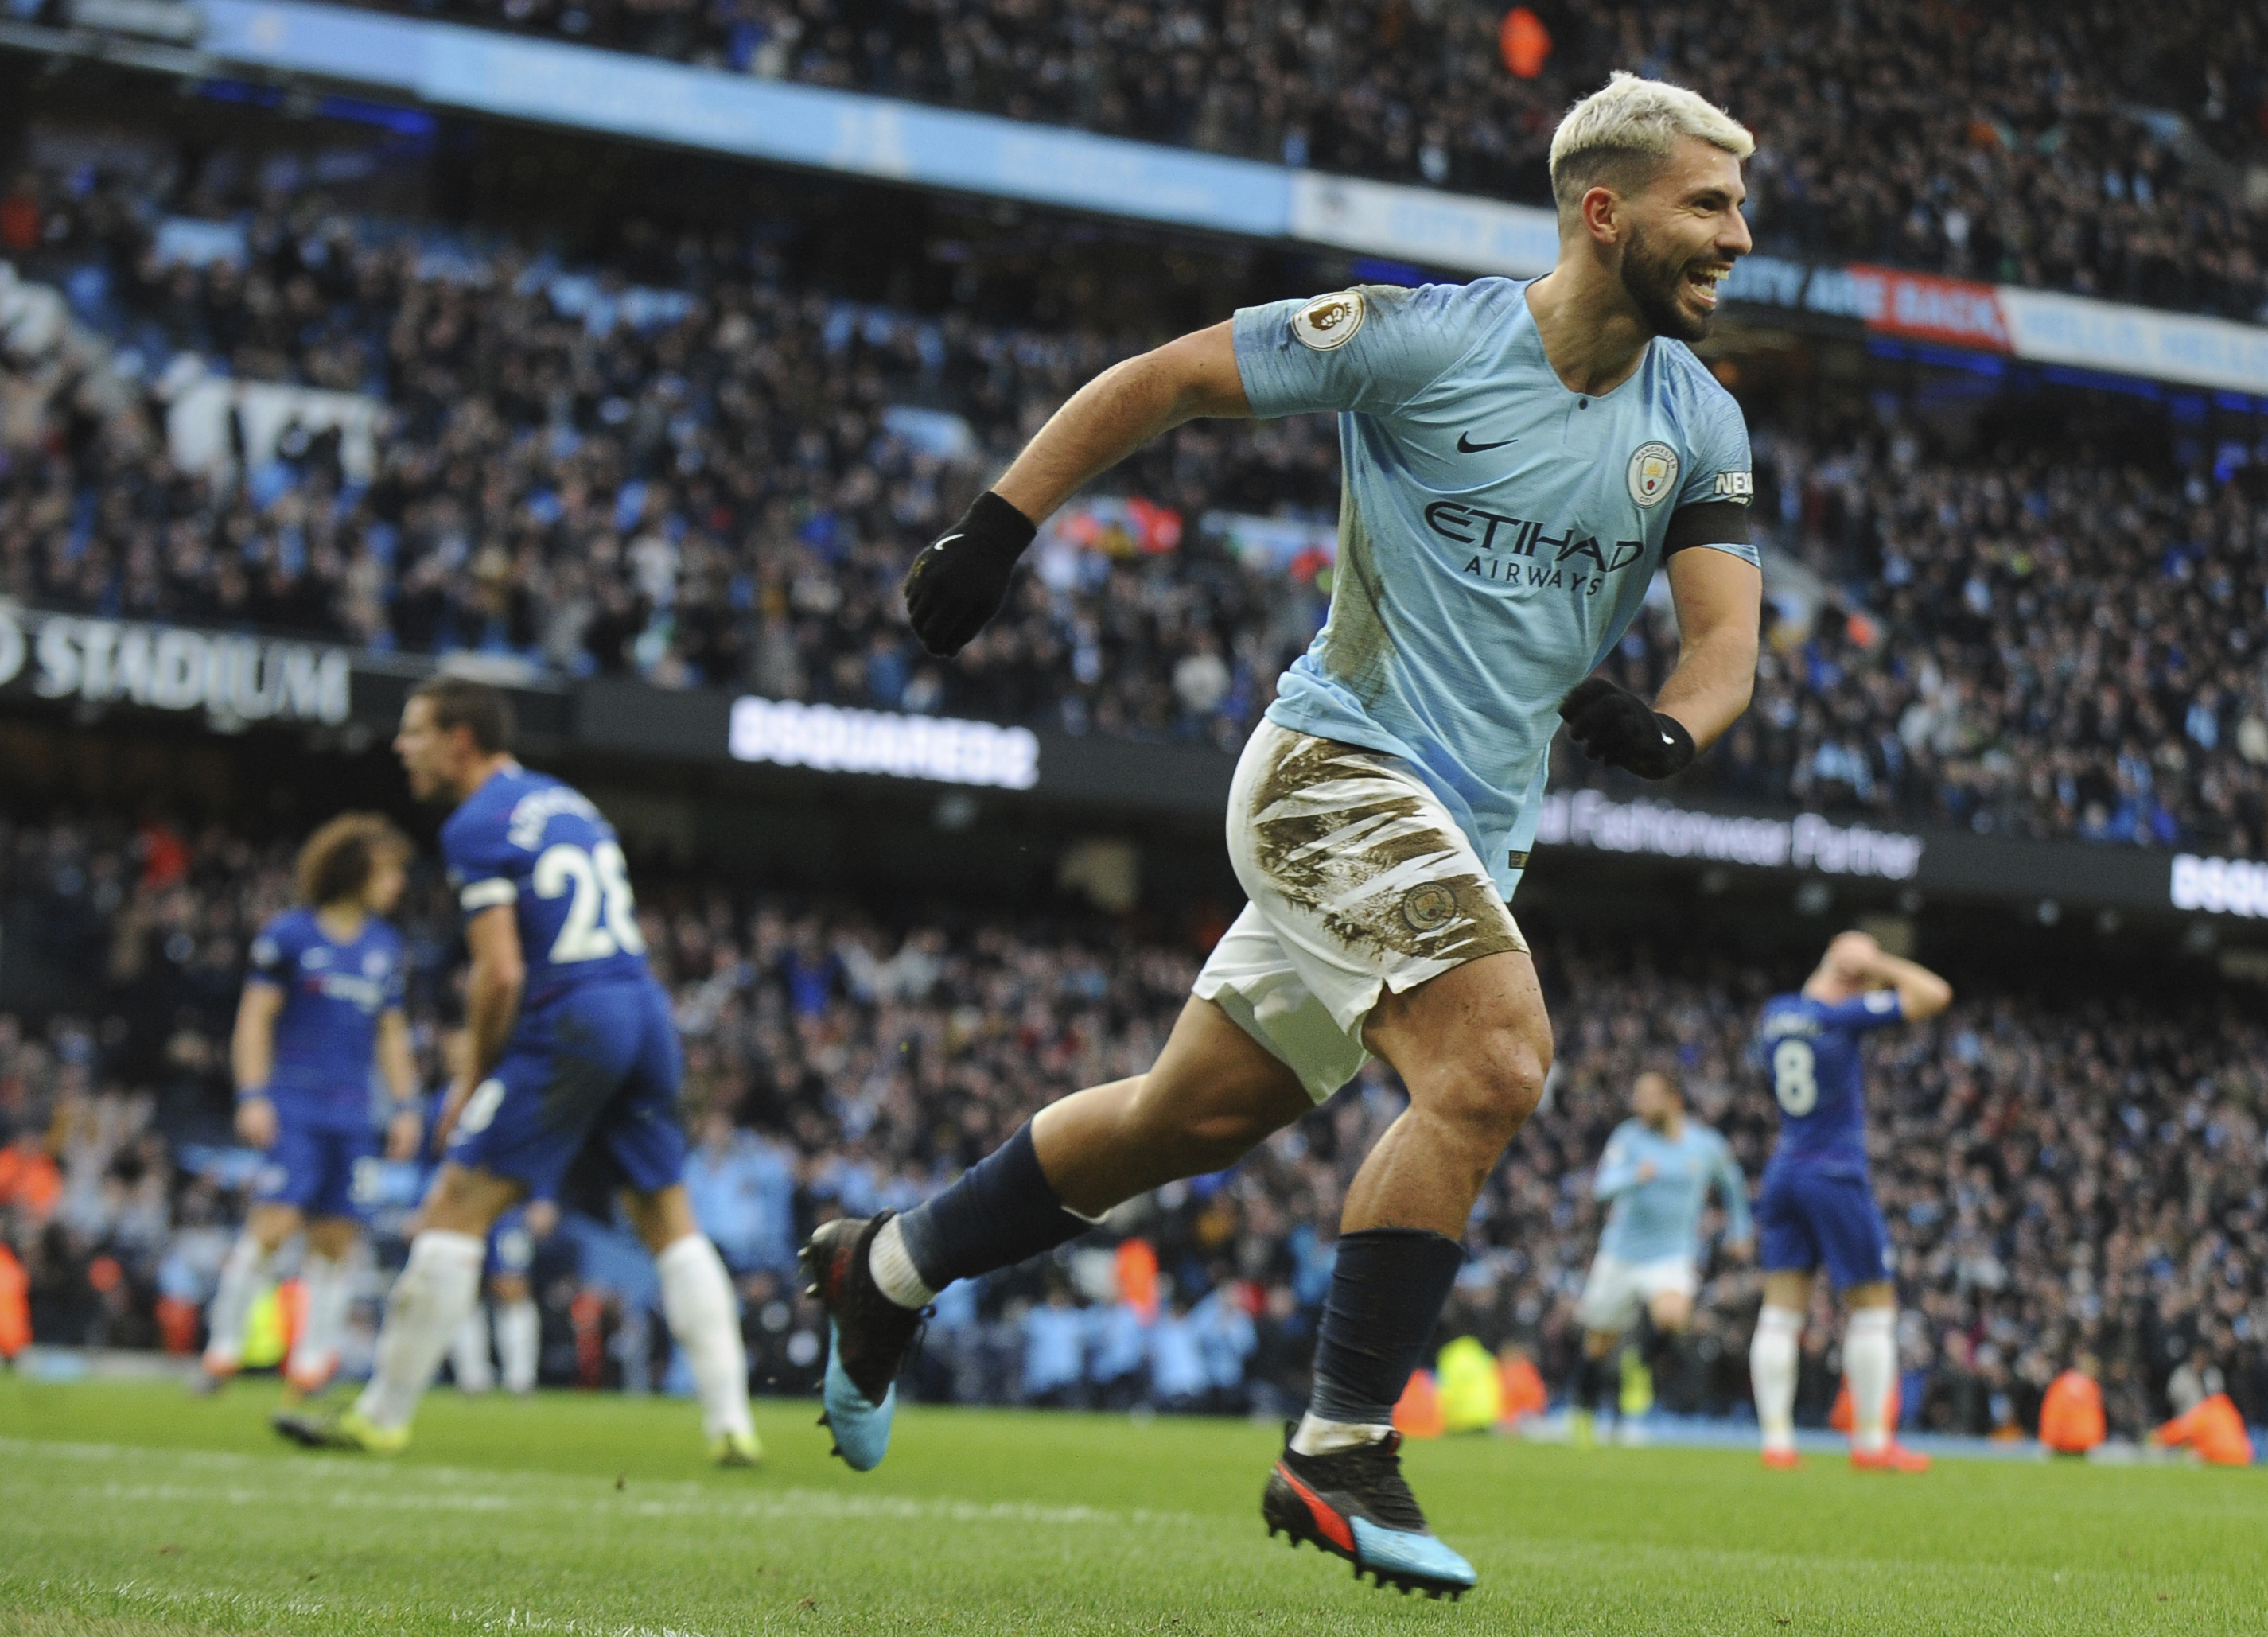 Aguero, City humiliate Chelsea _ even referee joins in japes